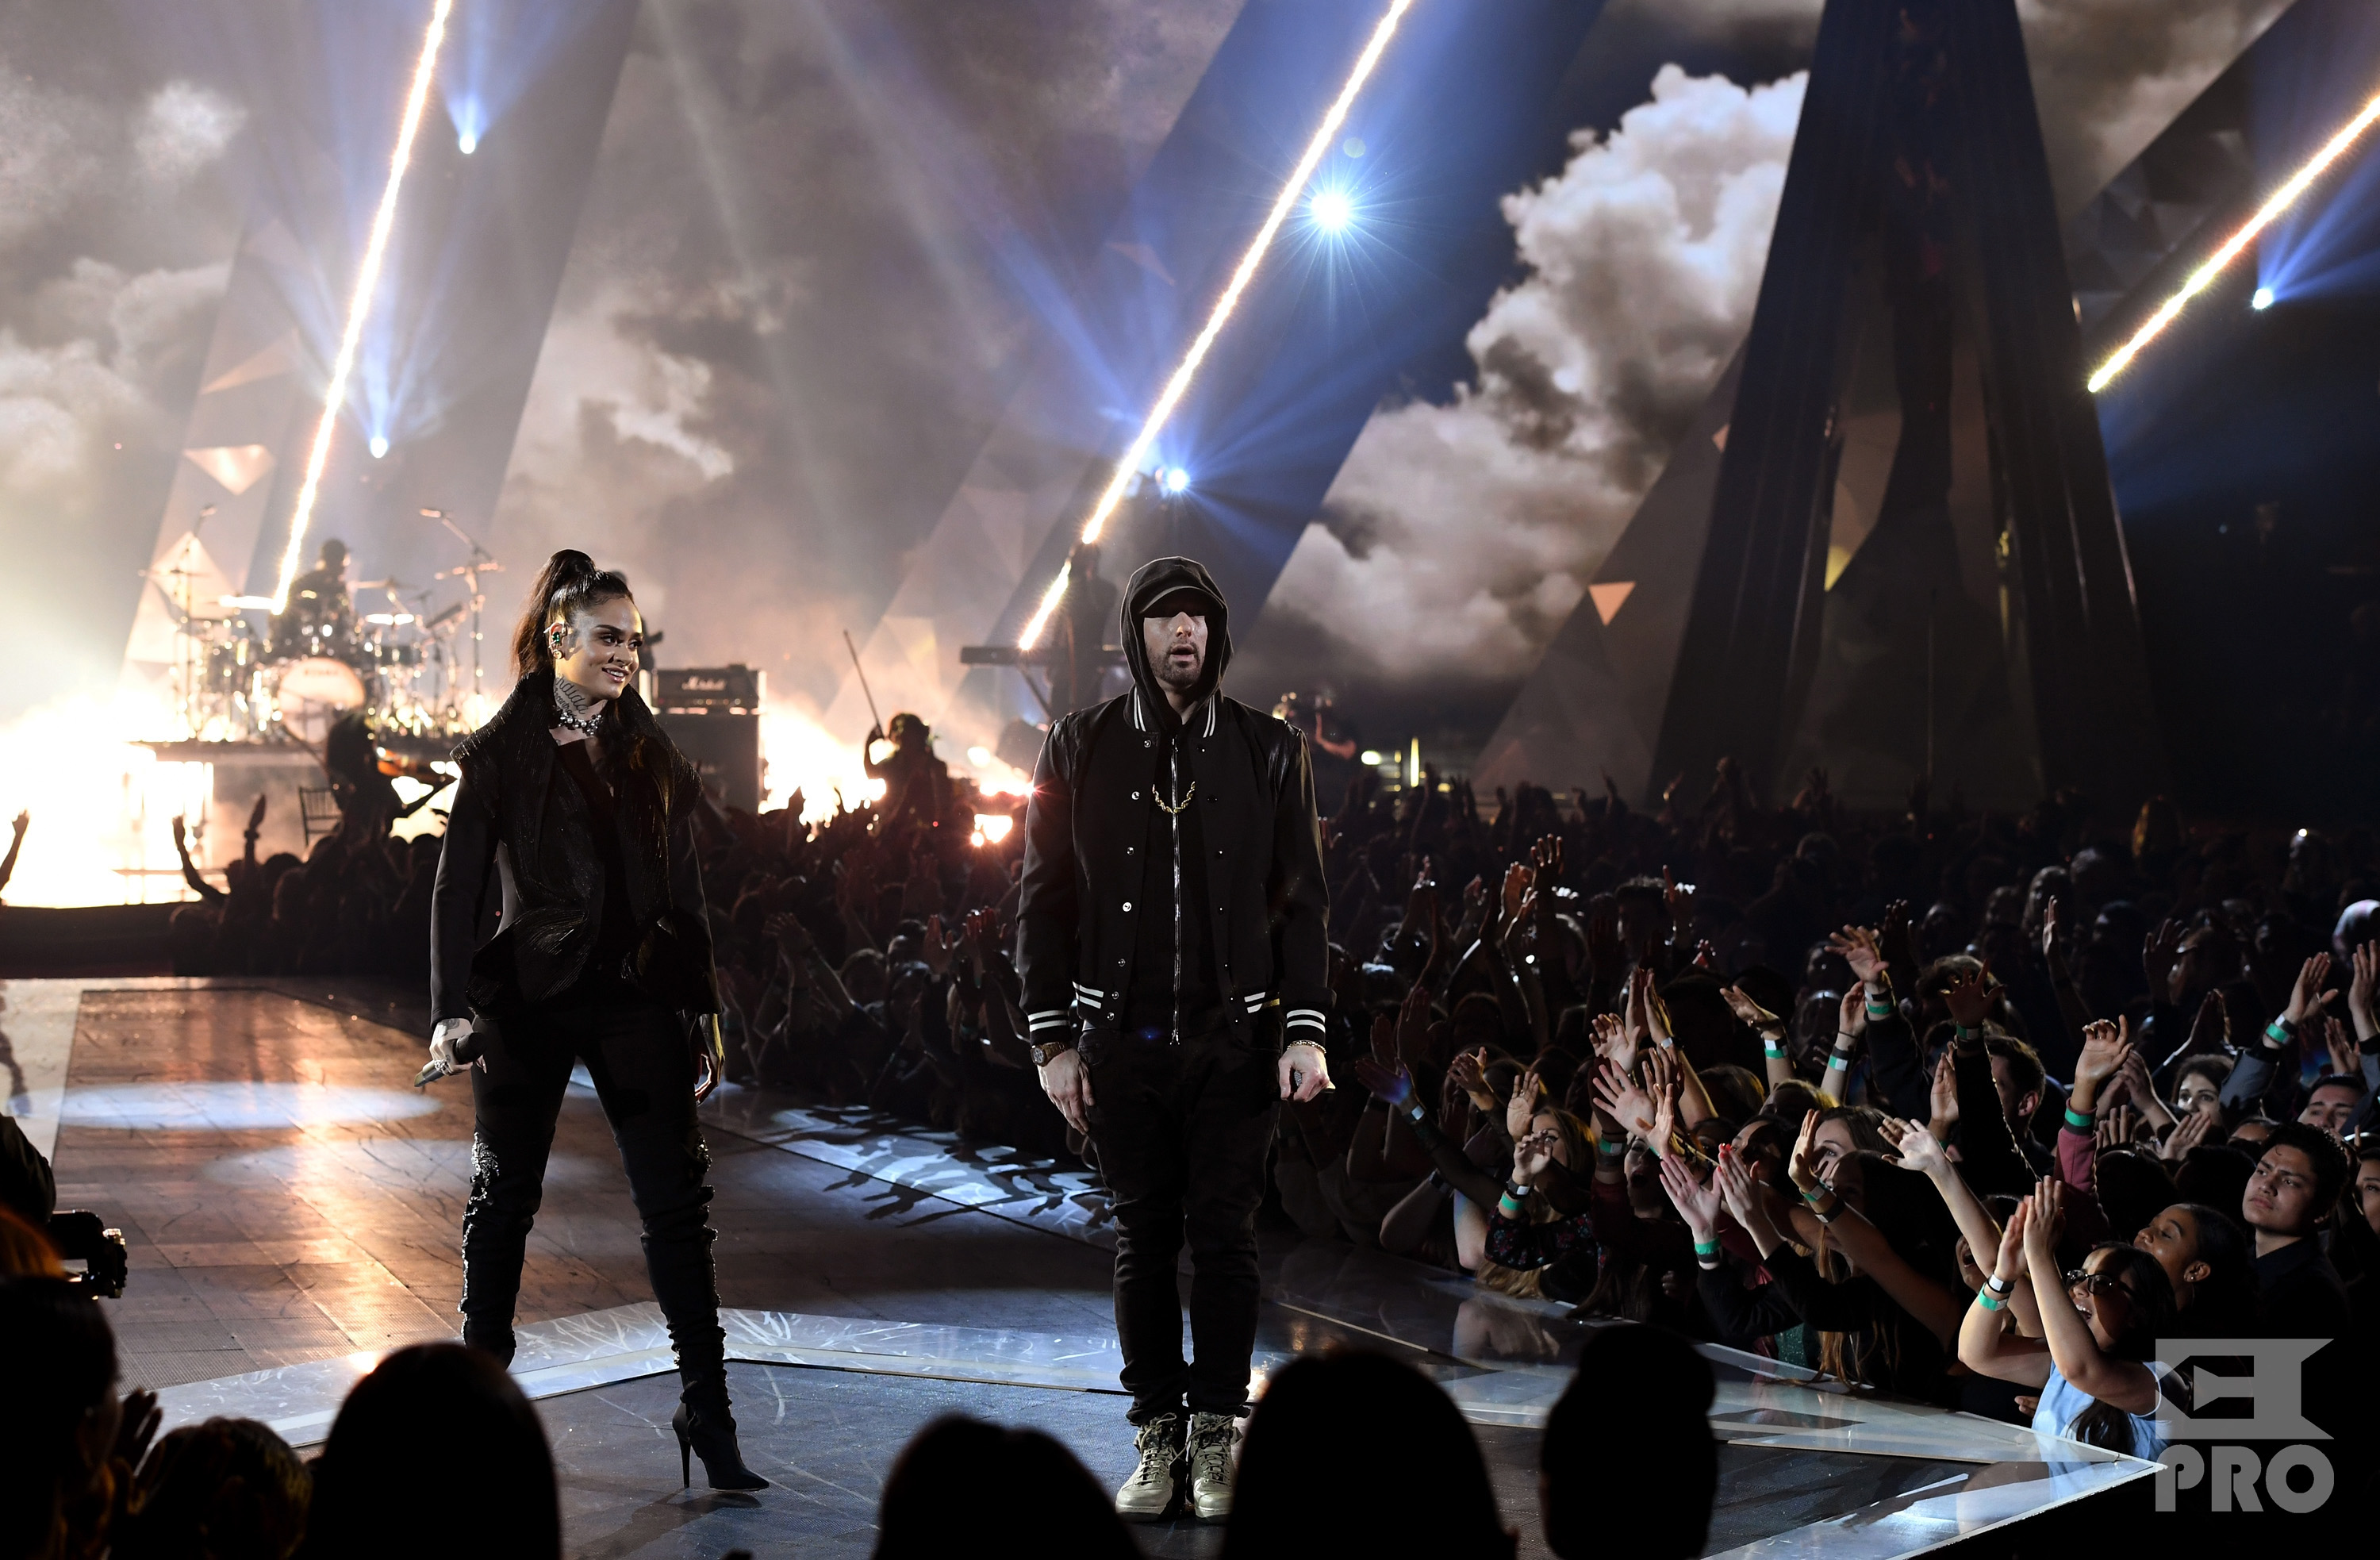 INGLEWOOD, CA - MARCH 11: Kehlani (L) and Eminem perform onstage during the 2018 iHeartRadio Music Awards which broadcasted live on TBS, TNT, and truTV at The Forum on March 11, 2018 in Inglewood, California. (Photo by Kevin Winter/Getty Images for iHeartMedia)